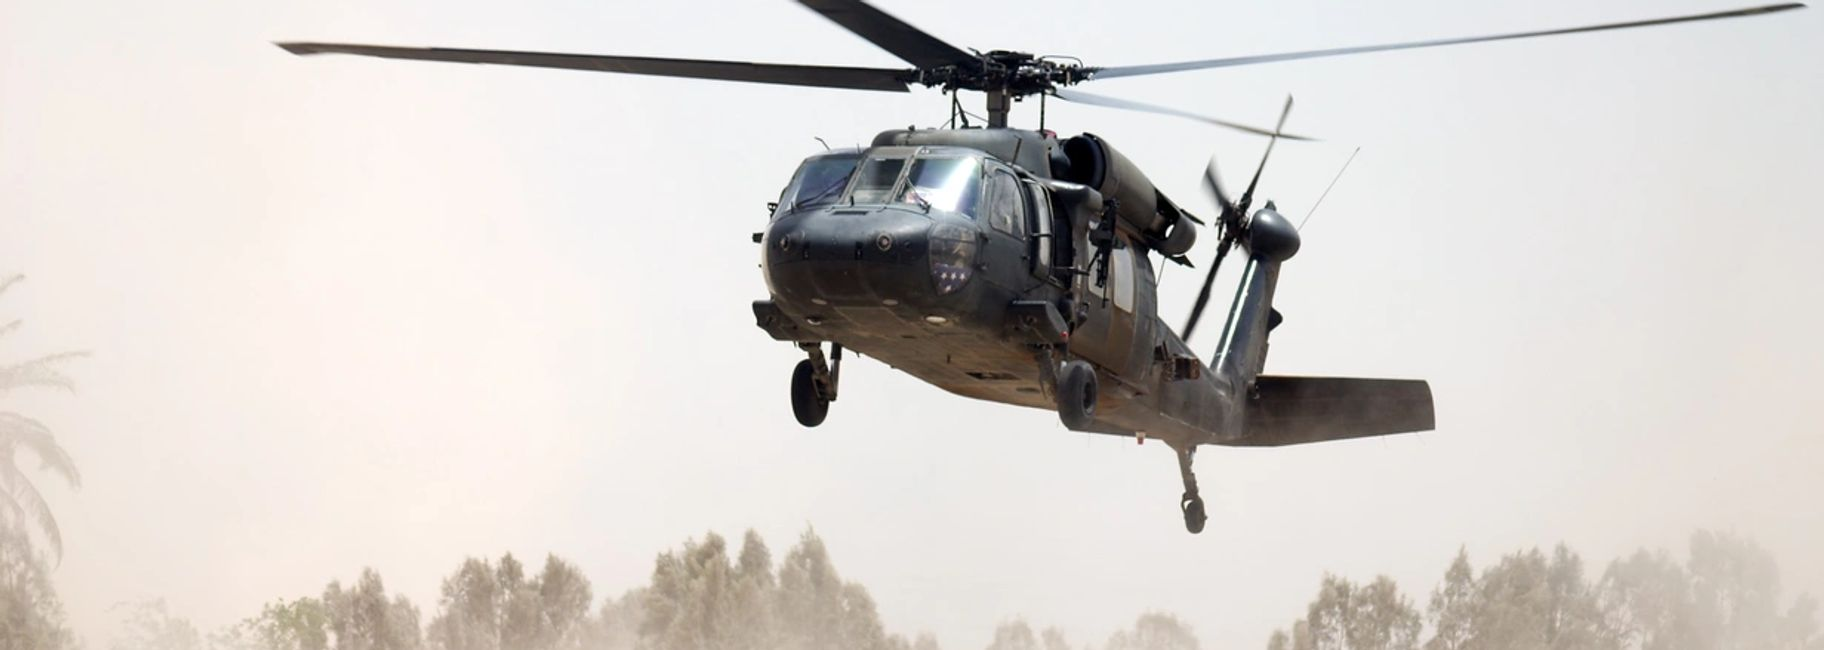 Blackhawk helicopter in Iraq.